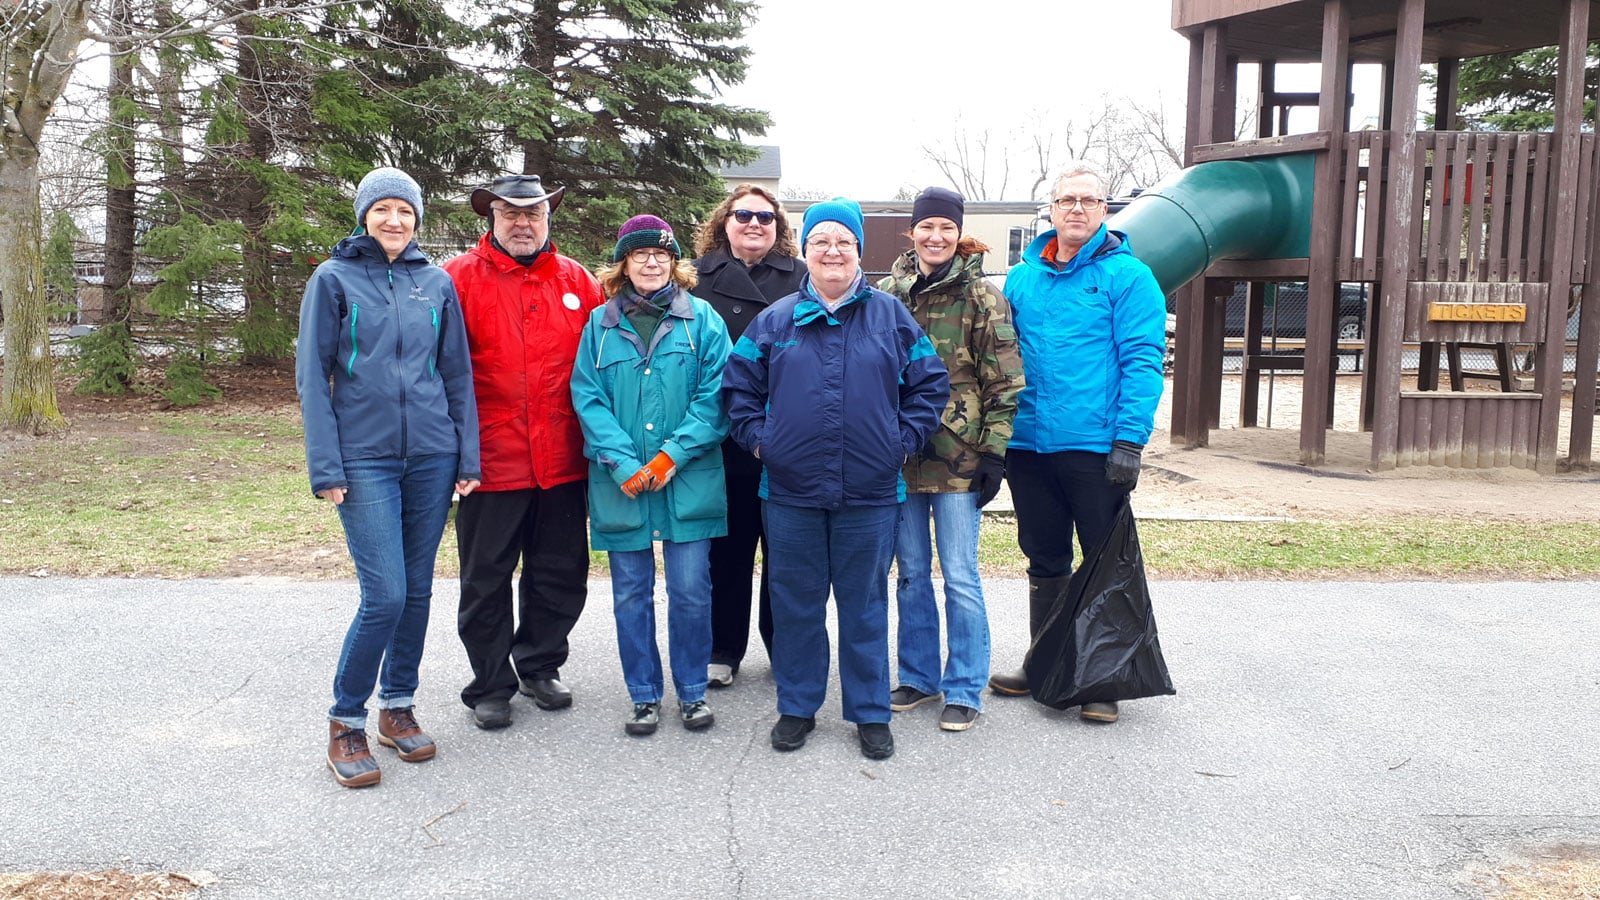 The Stittsville Goulbourn Horticultural Society organized a clean-up along the Trans Canada Trail